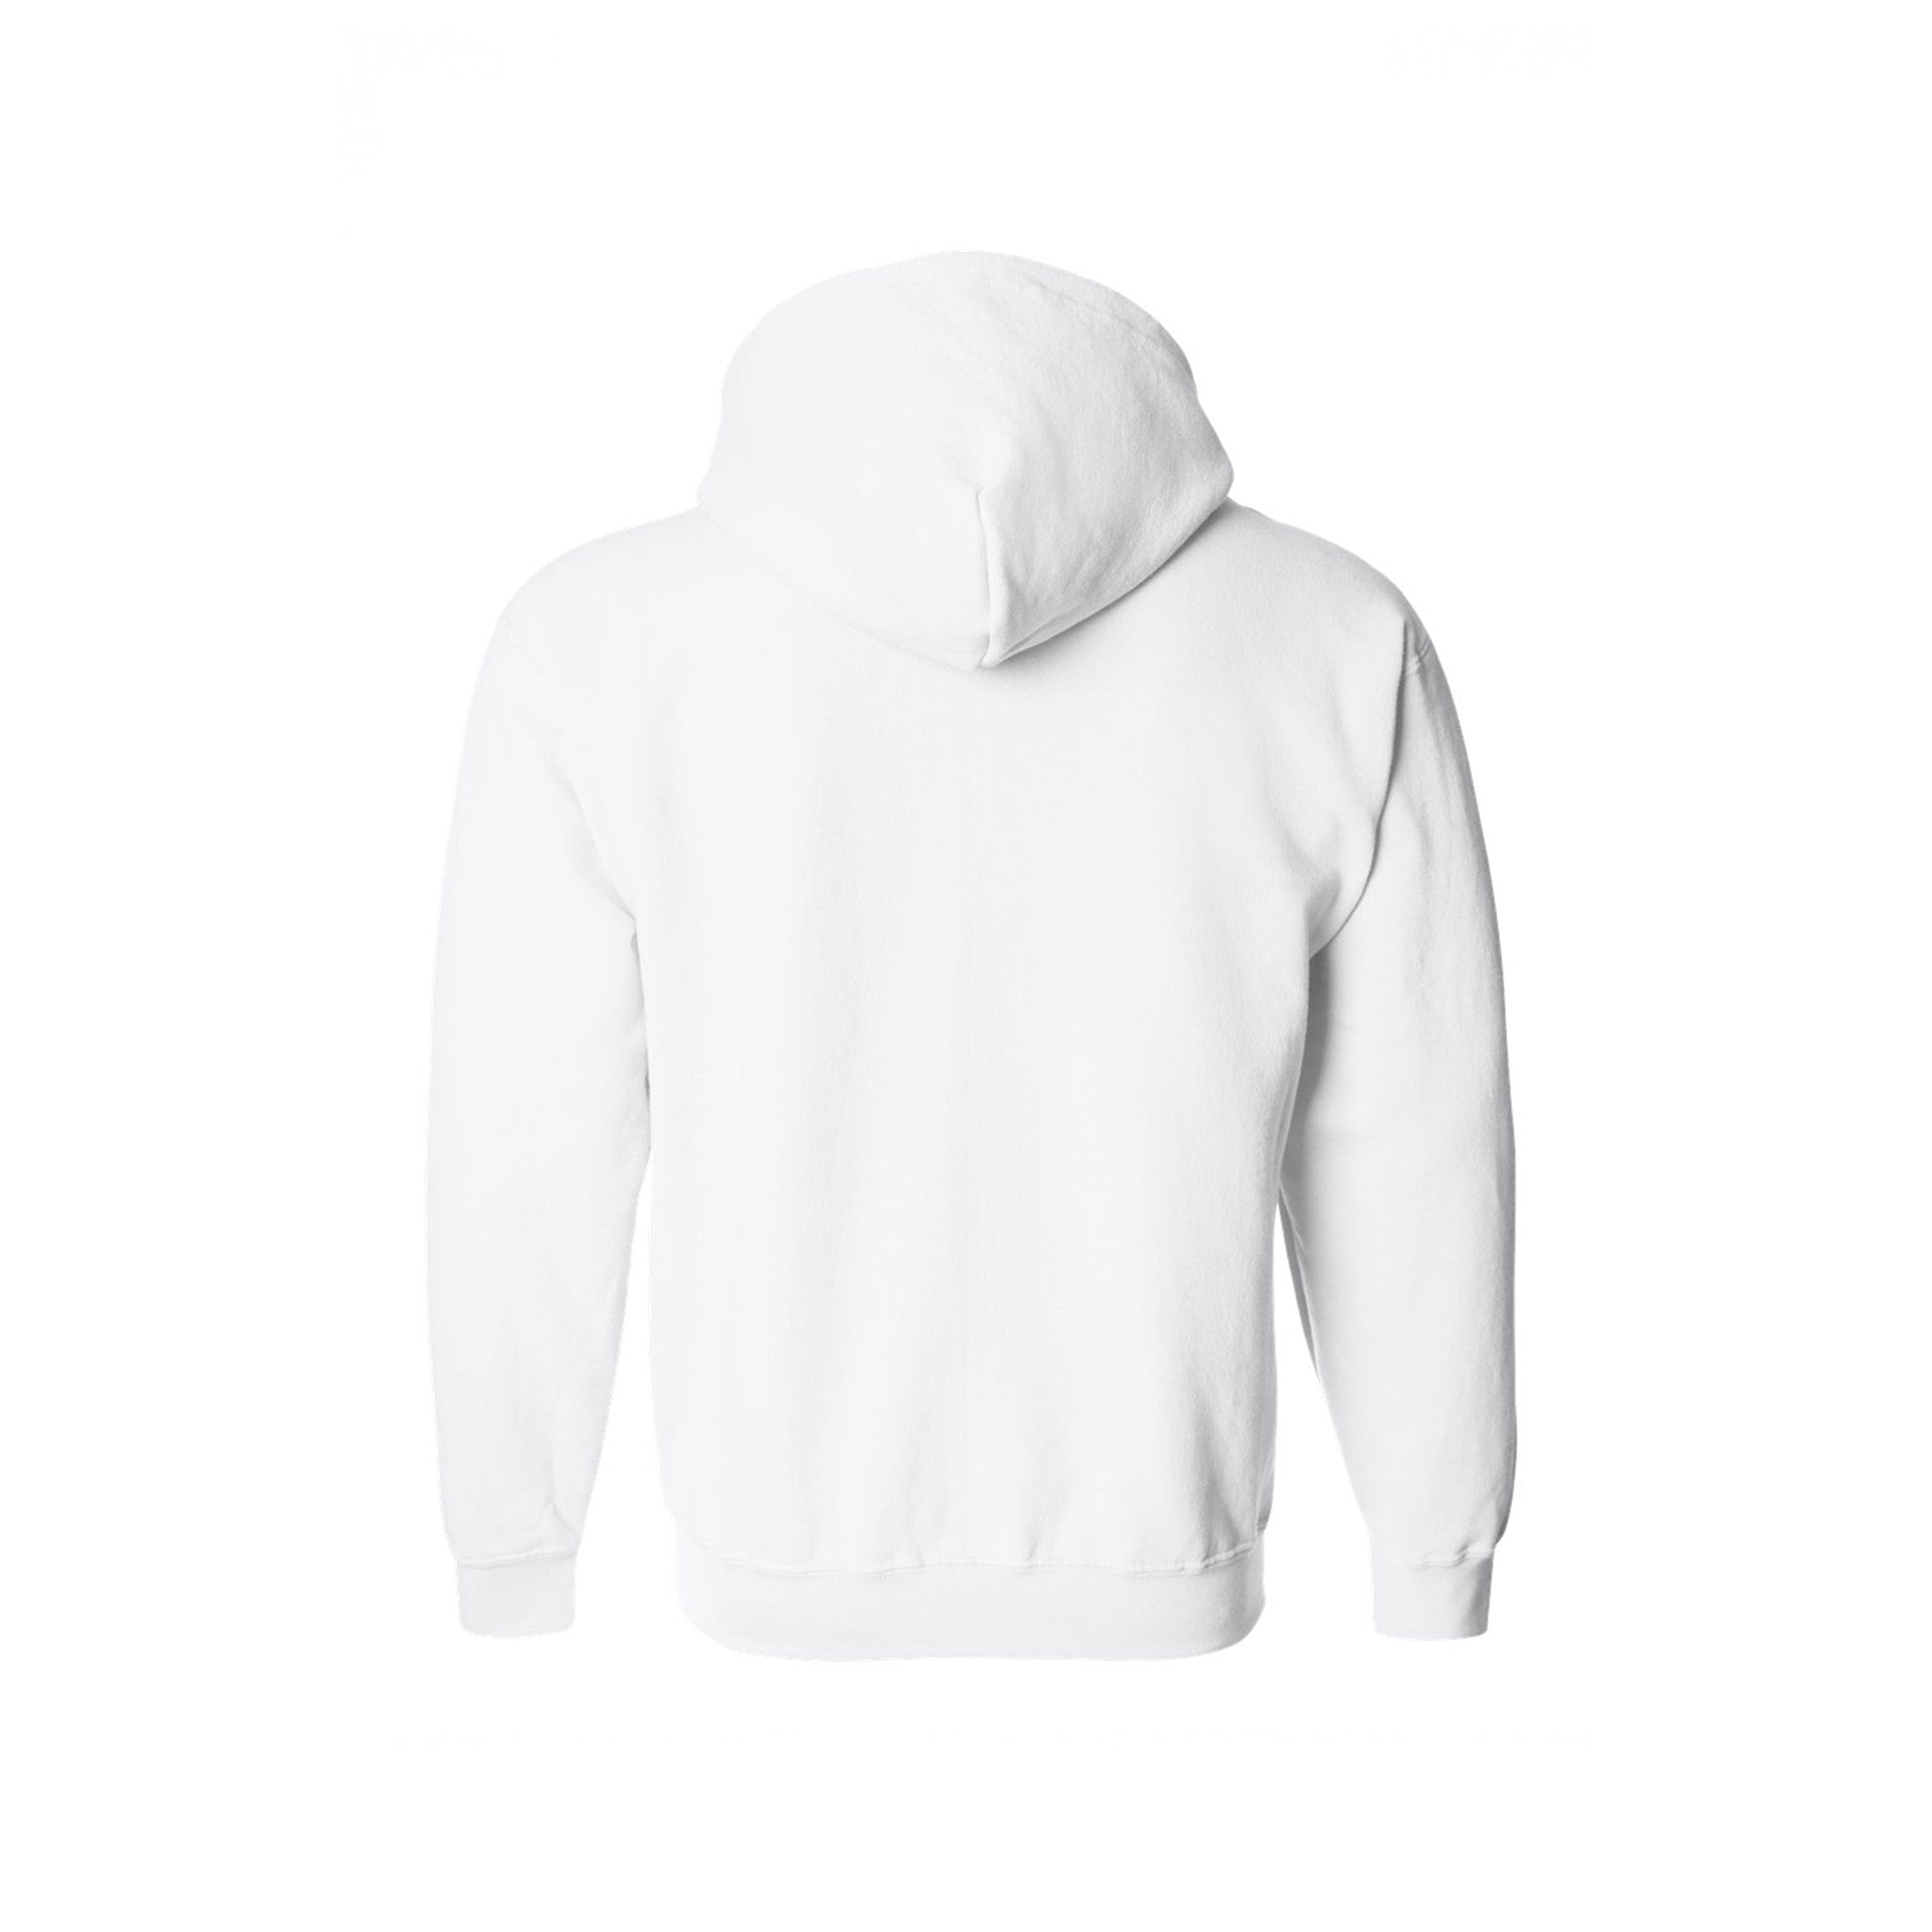 SportyFish Giant Trevally White hoodie back view